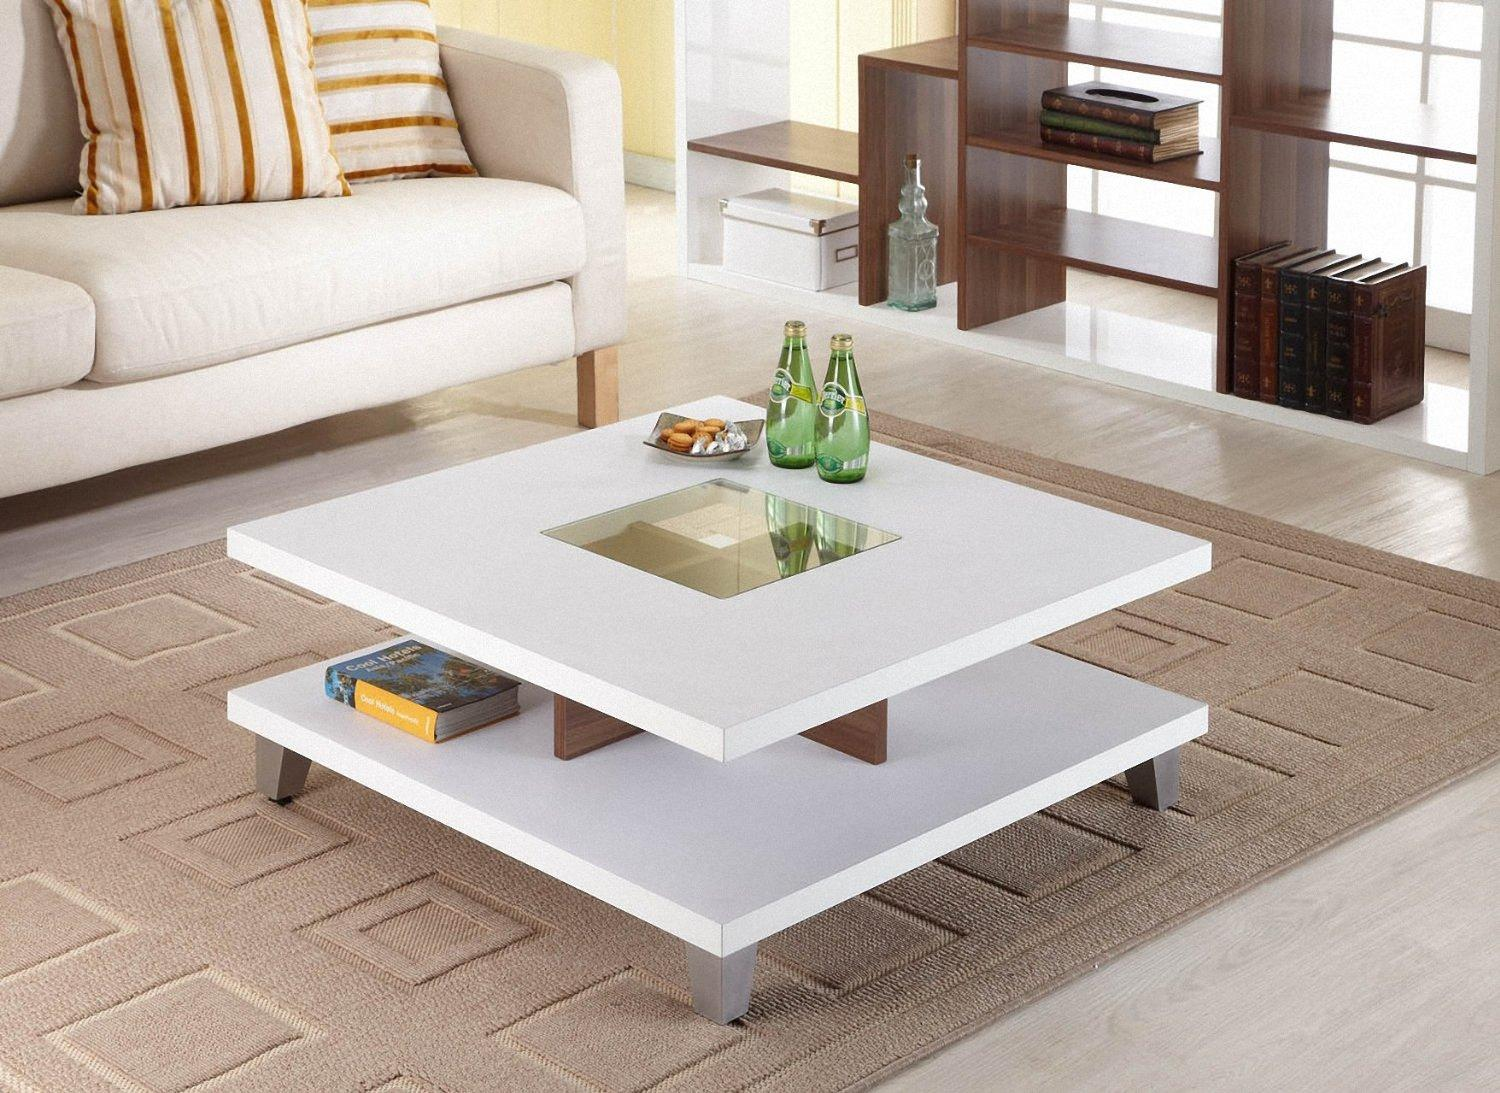 Furniture of America Lendon Square Coffee Table